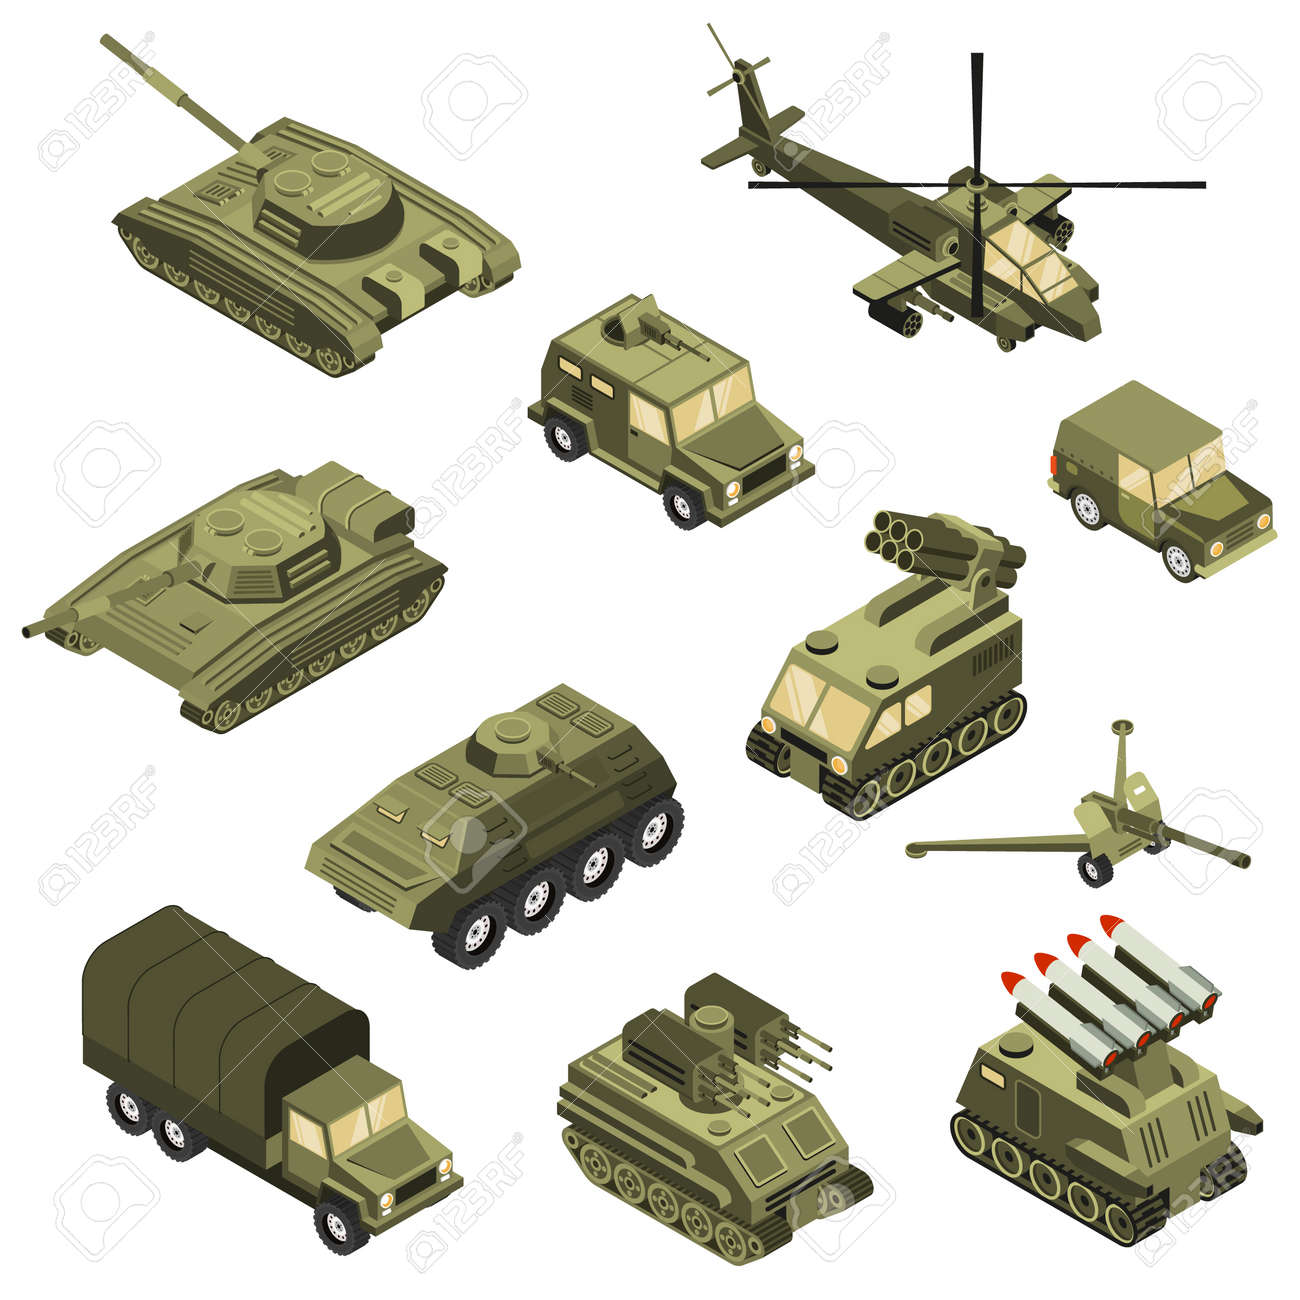 Military armored transportation cargo personnel carrier fighting land vehicles and helicopter isometric icons collection isolated vector illustration - 166028910